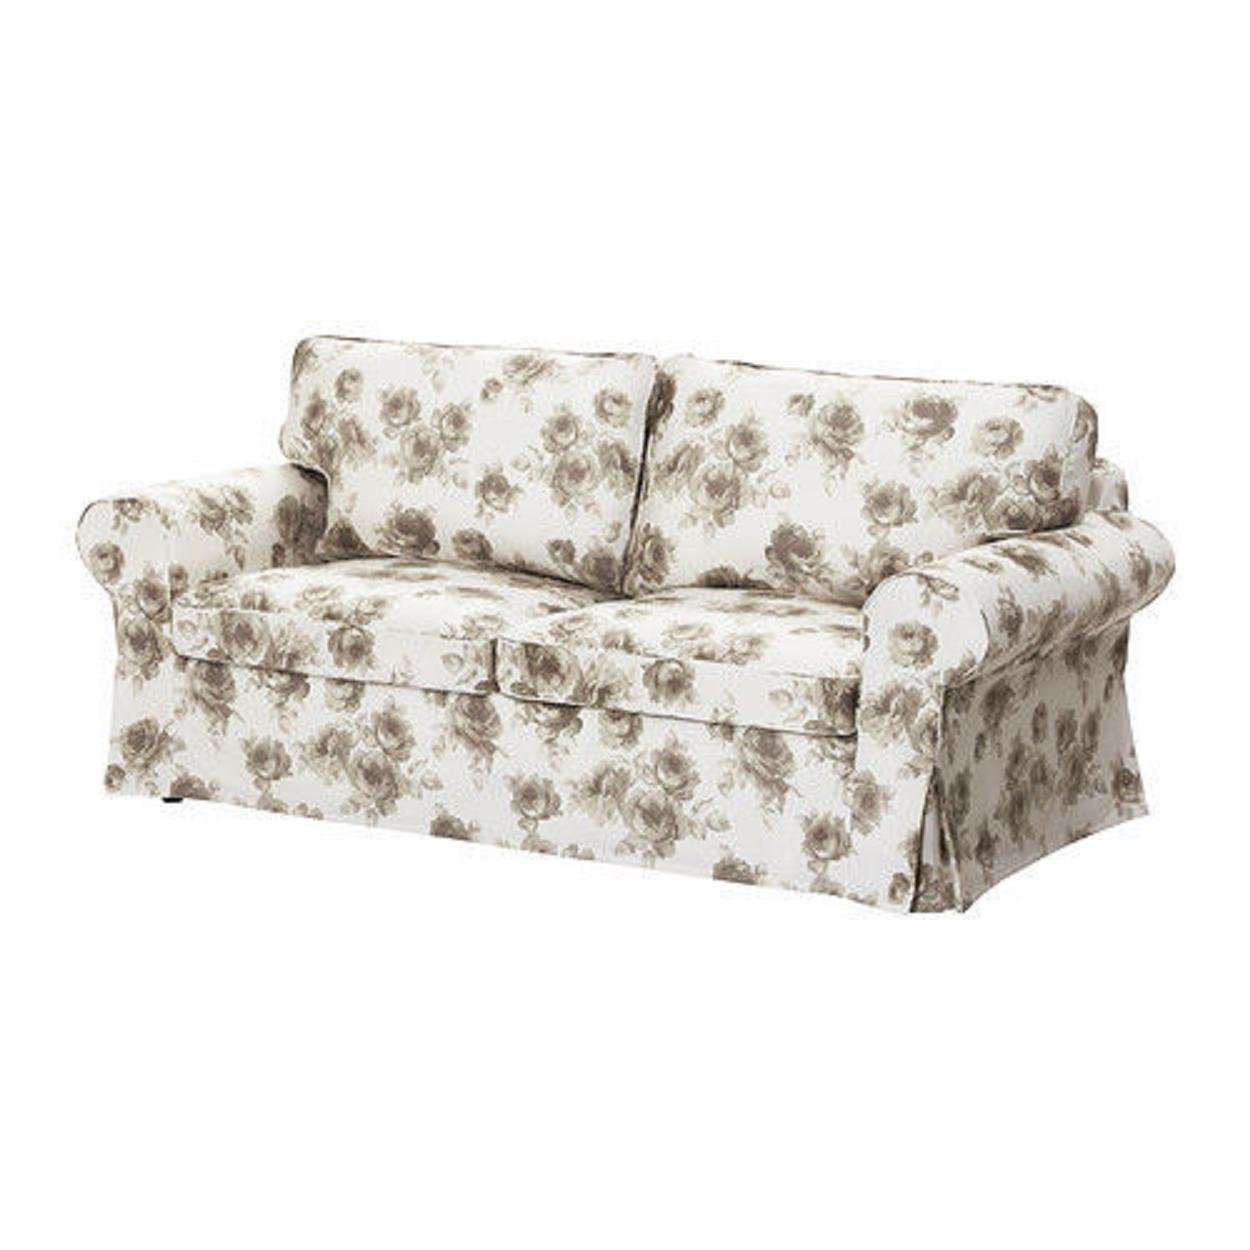 Get Quotations · Ikea Ektorp Slipcover For Sofabed Norlida White Beige  502.266.62 Sofa Bed Cover